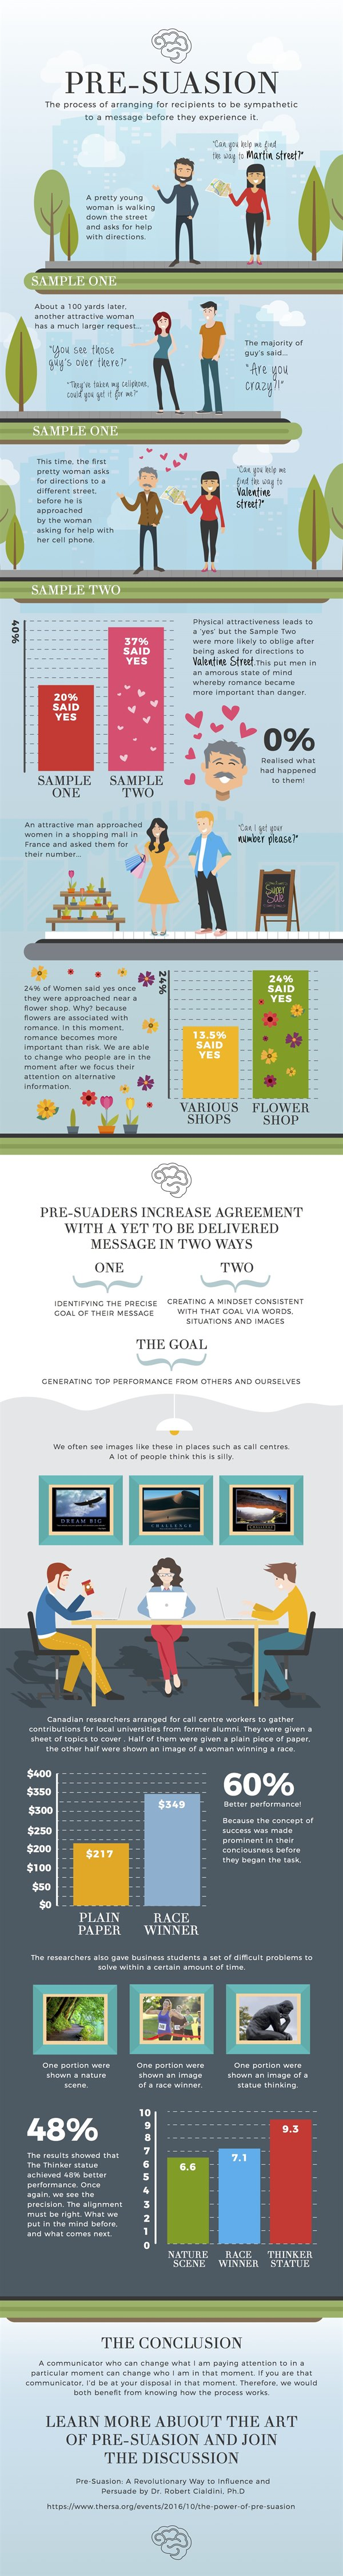 power-of-pre-suasion-infographic